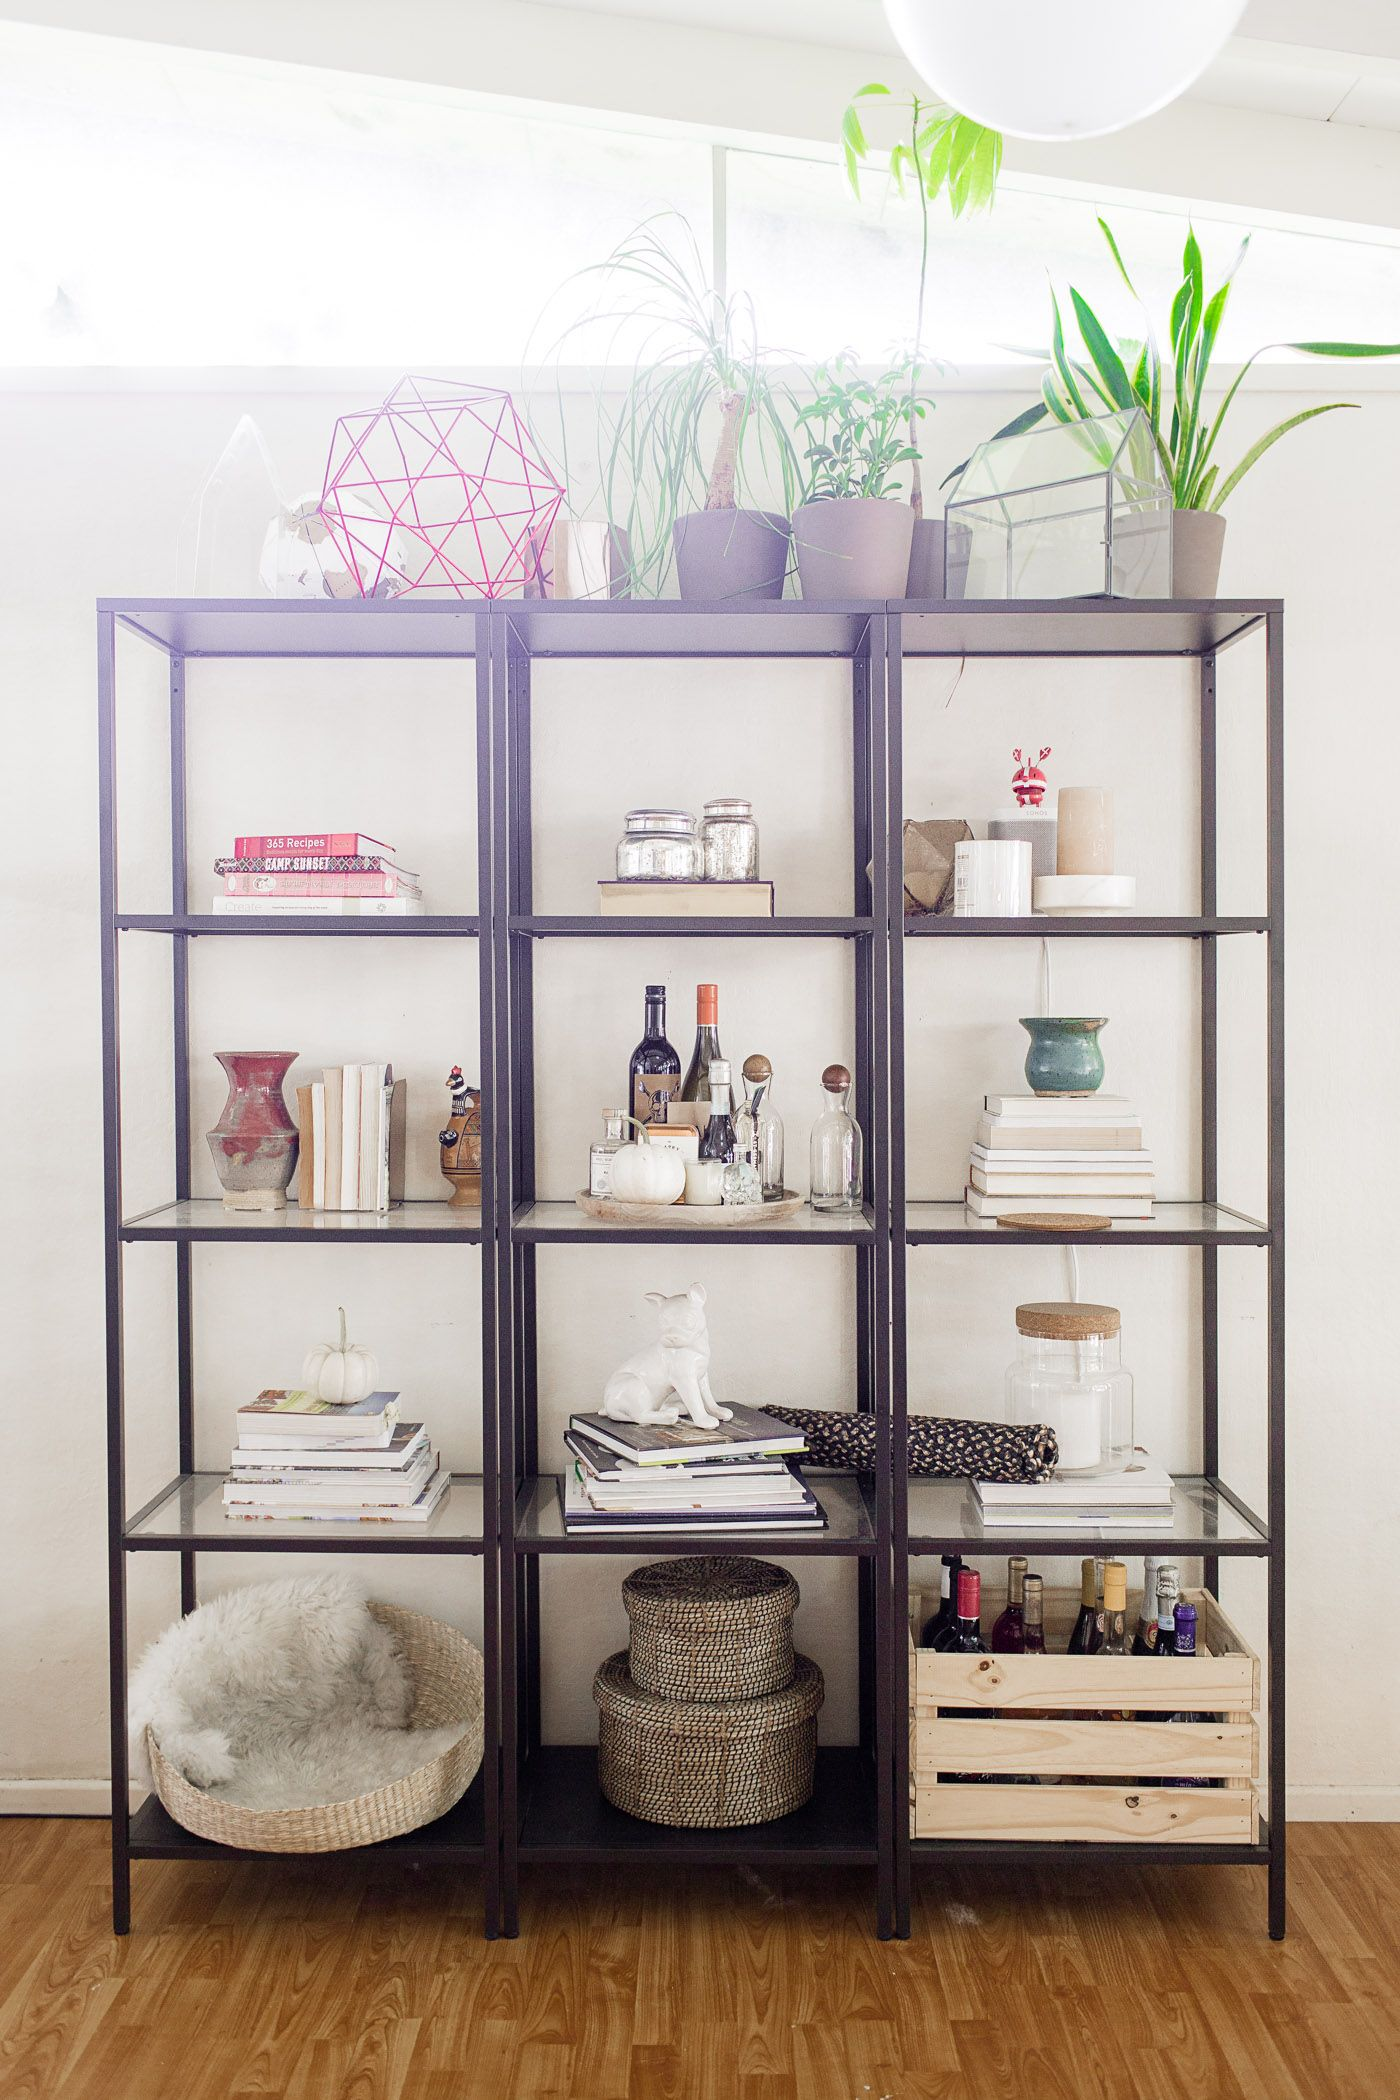 Easy Steps To Style A Shelf The BEFORE Featuring My Ikea Vittsj